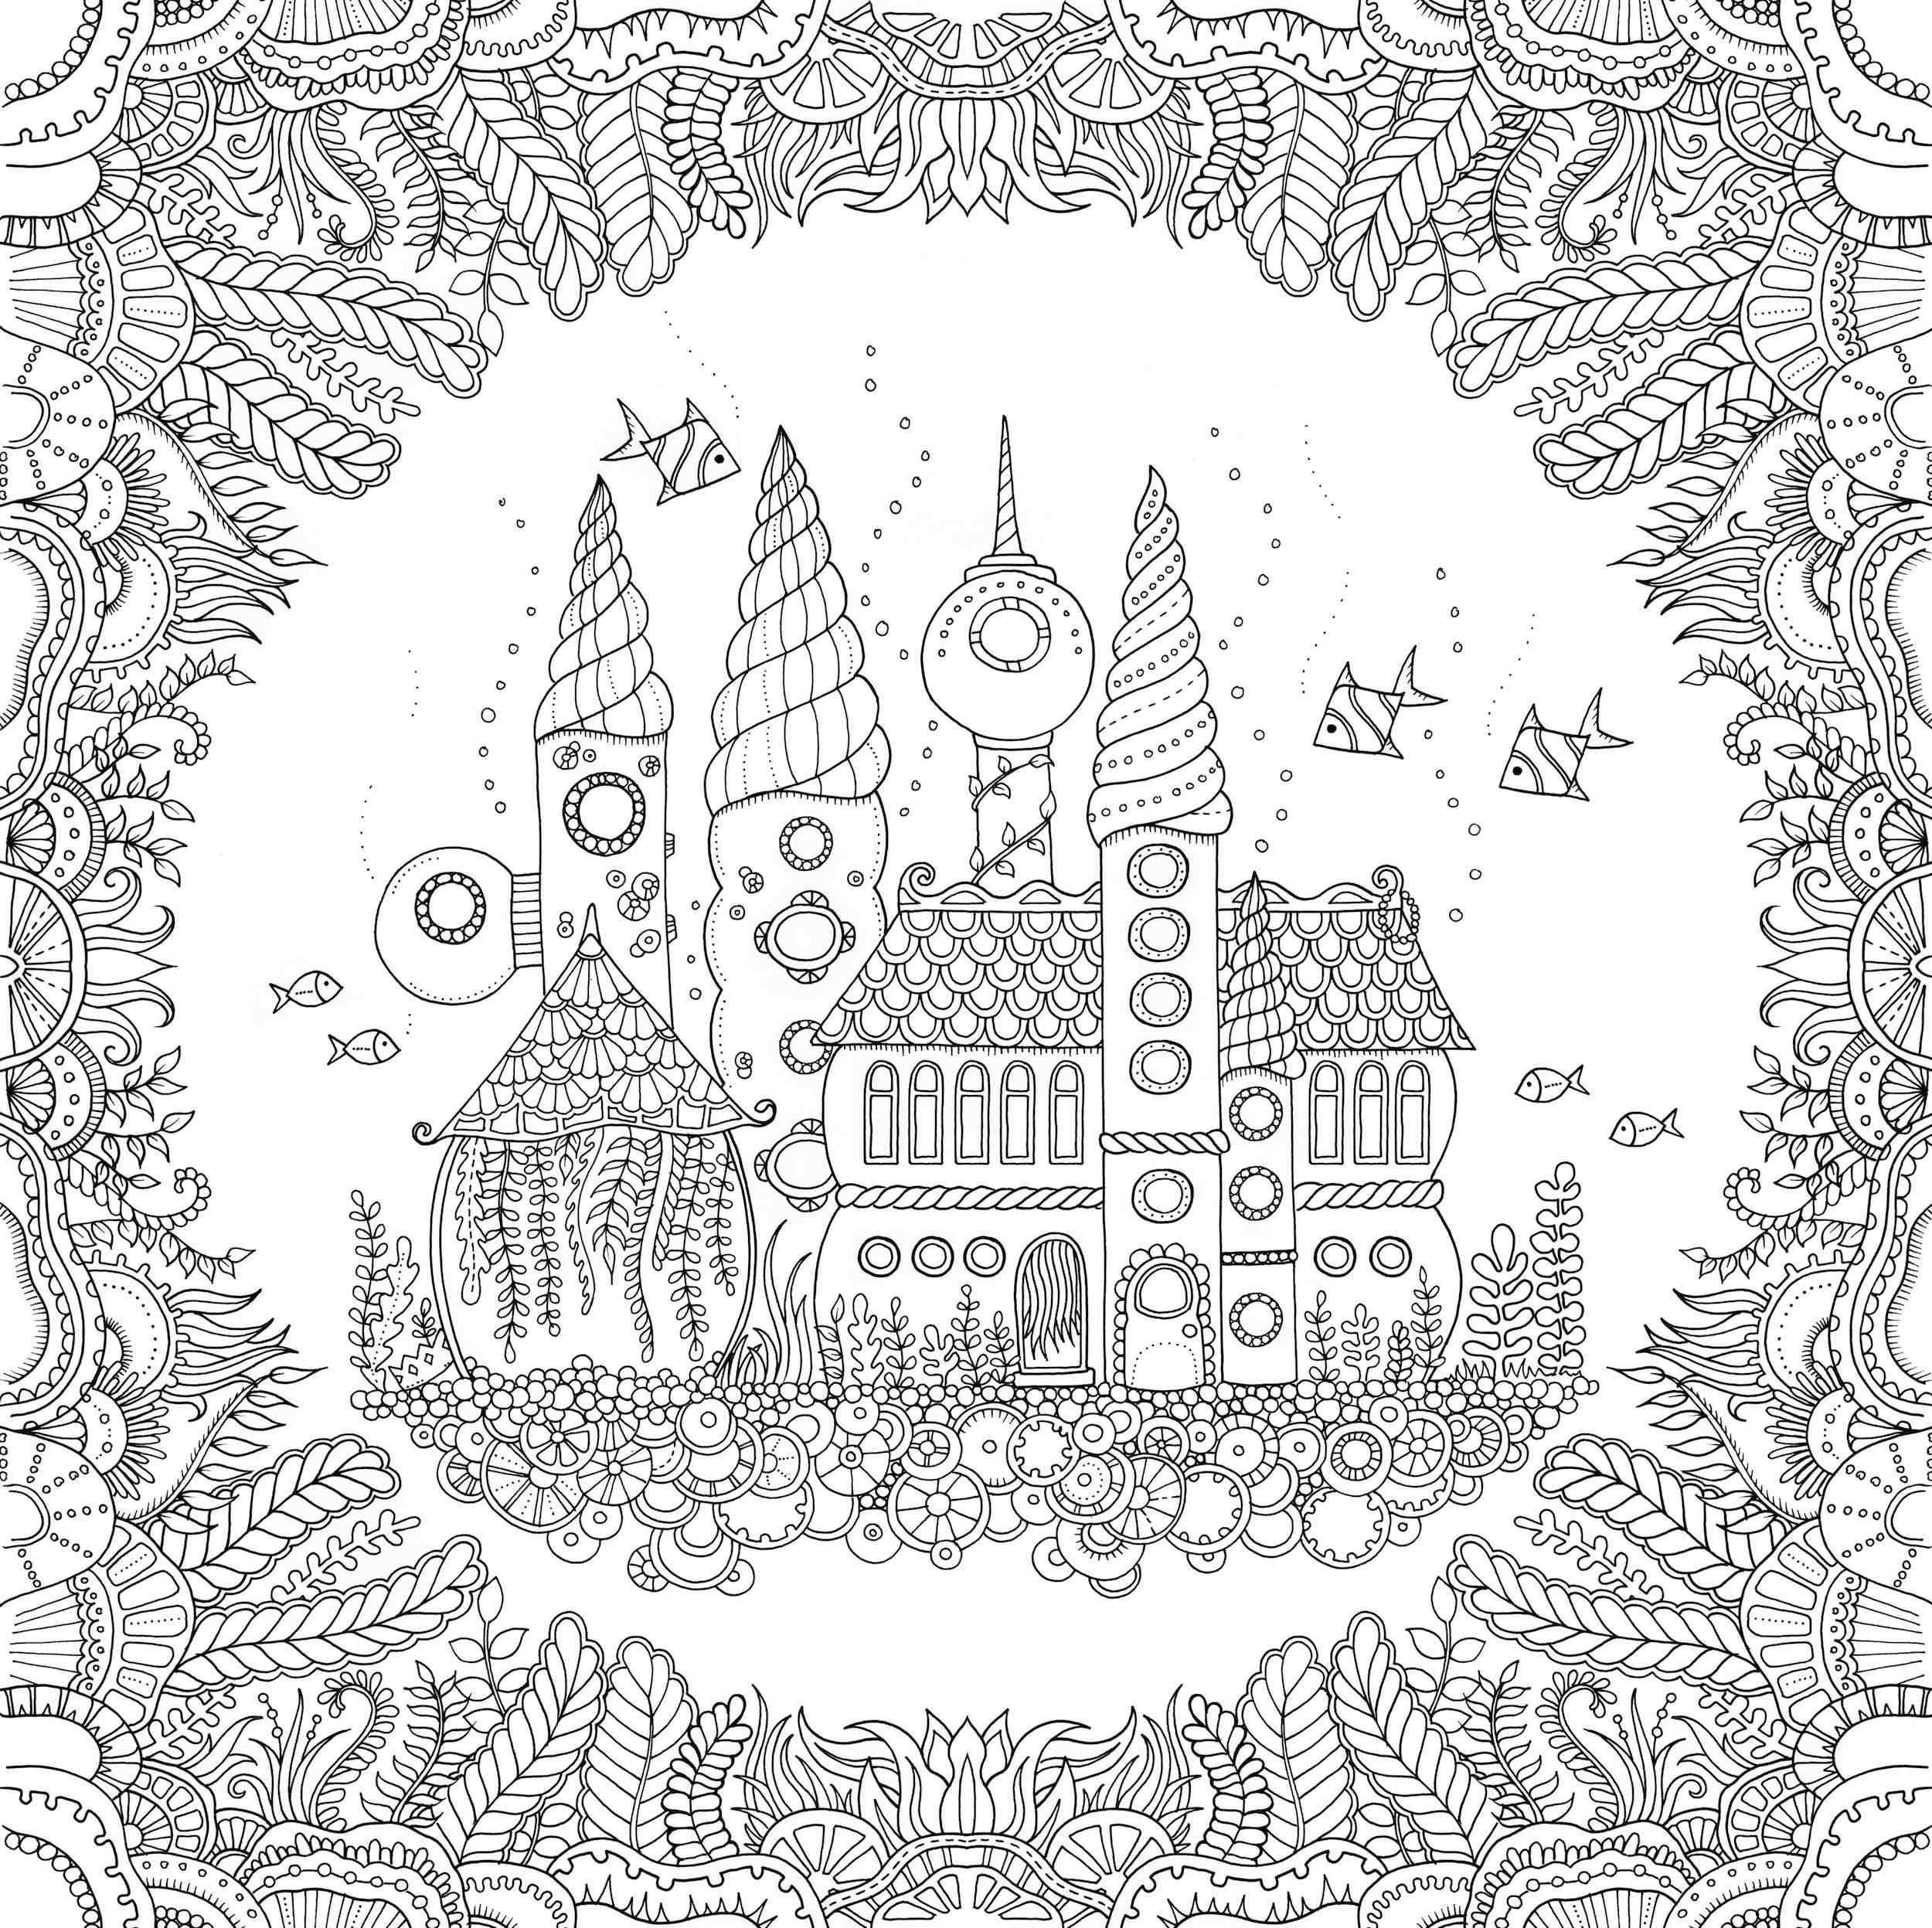 Best ideas about Enchanted Forest Coloring Sheets For Kids . Save or Pin Enchanted Forest Coloring Book Pages Now.